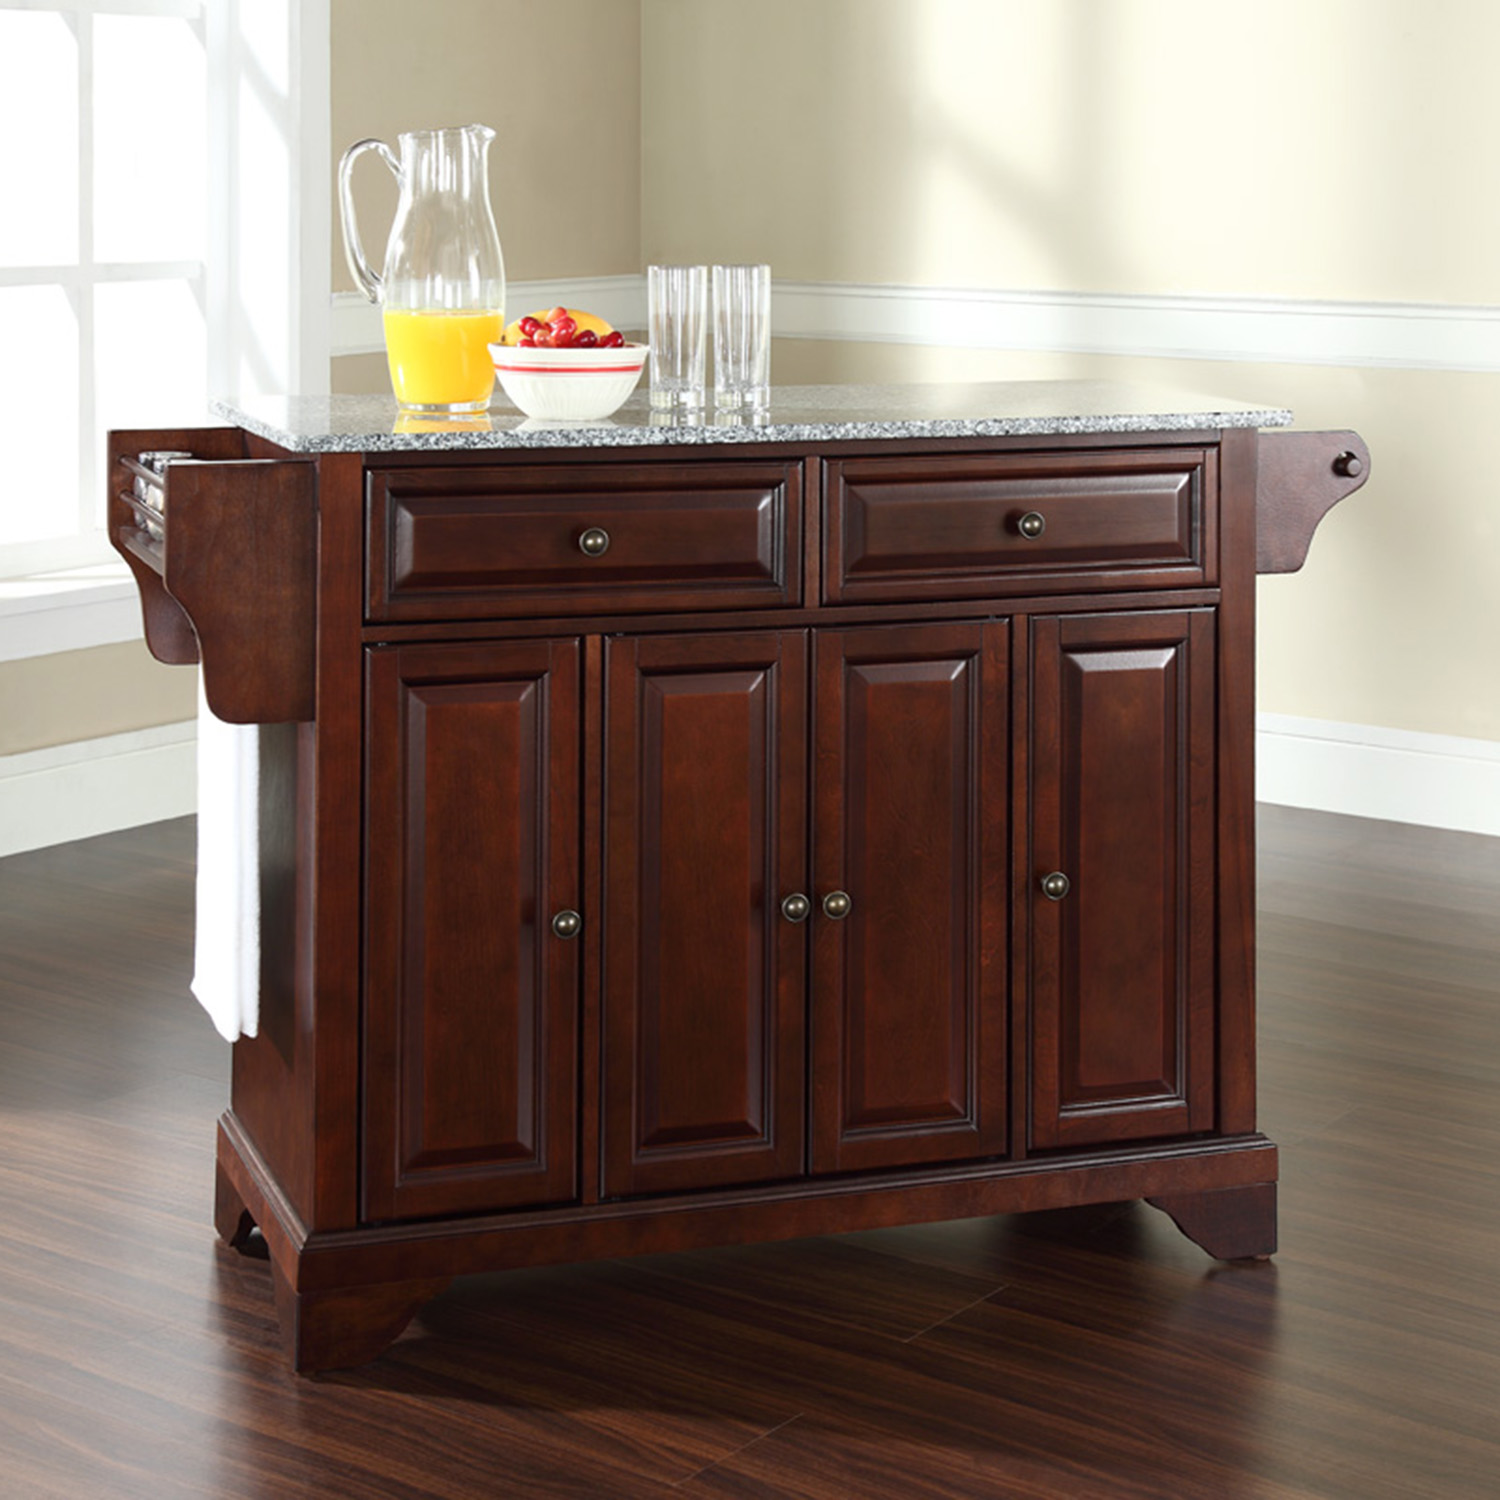 Lafayette Solid Granite Top Kitchen Island  Vintage. Lounge Living Room. Colorful Living Room Ideas. Contemporary Curtains For Living Room. Living Room Sets Modern. Vinyl Flooring In Living Room Ideas. Hollywood Glamour Living Room. Living Room Dividers. Basement Living Room Paint Ideas